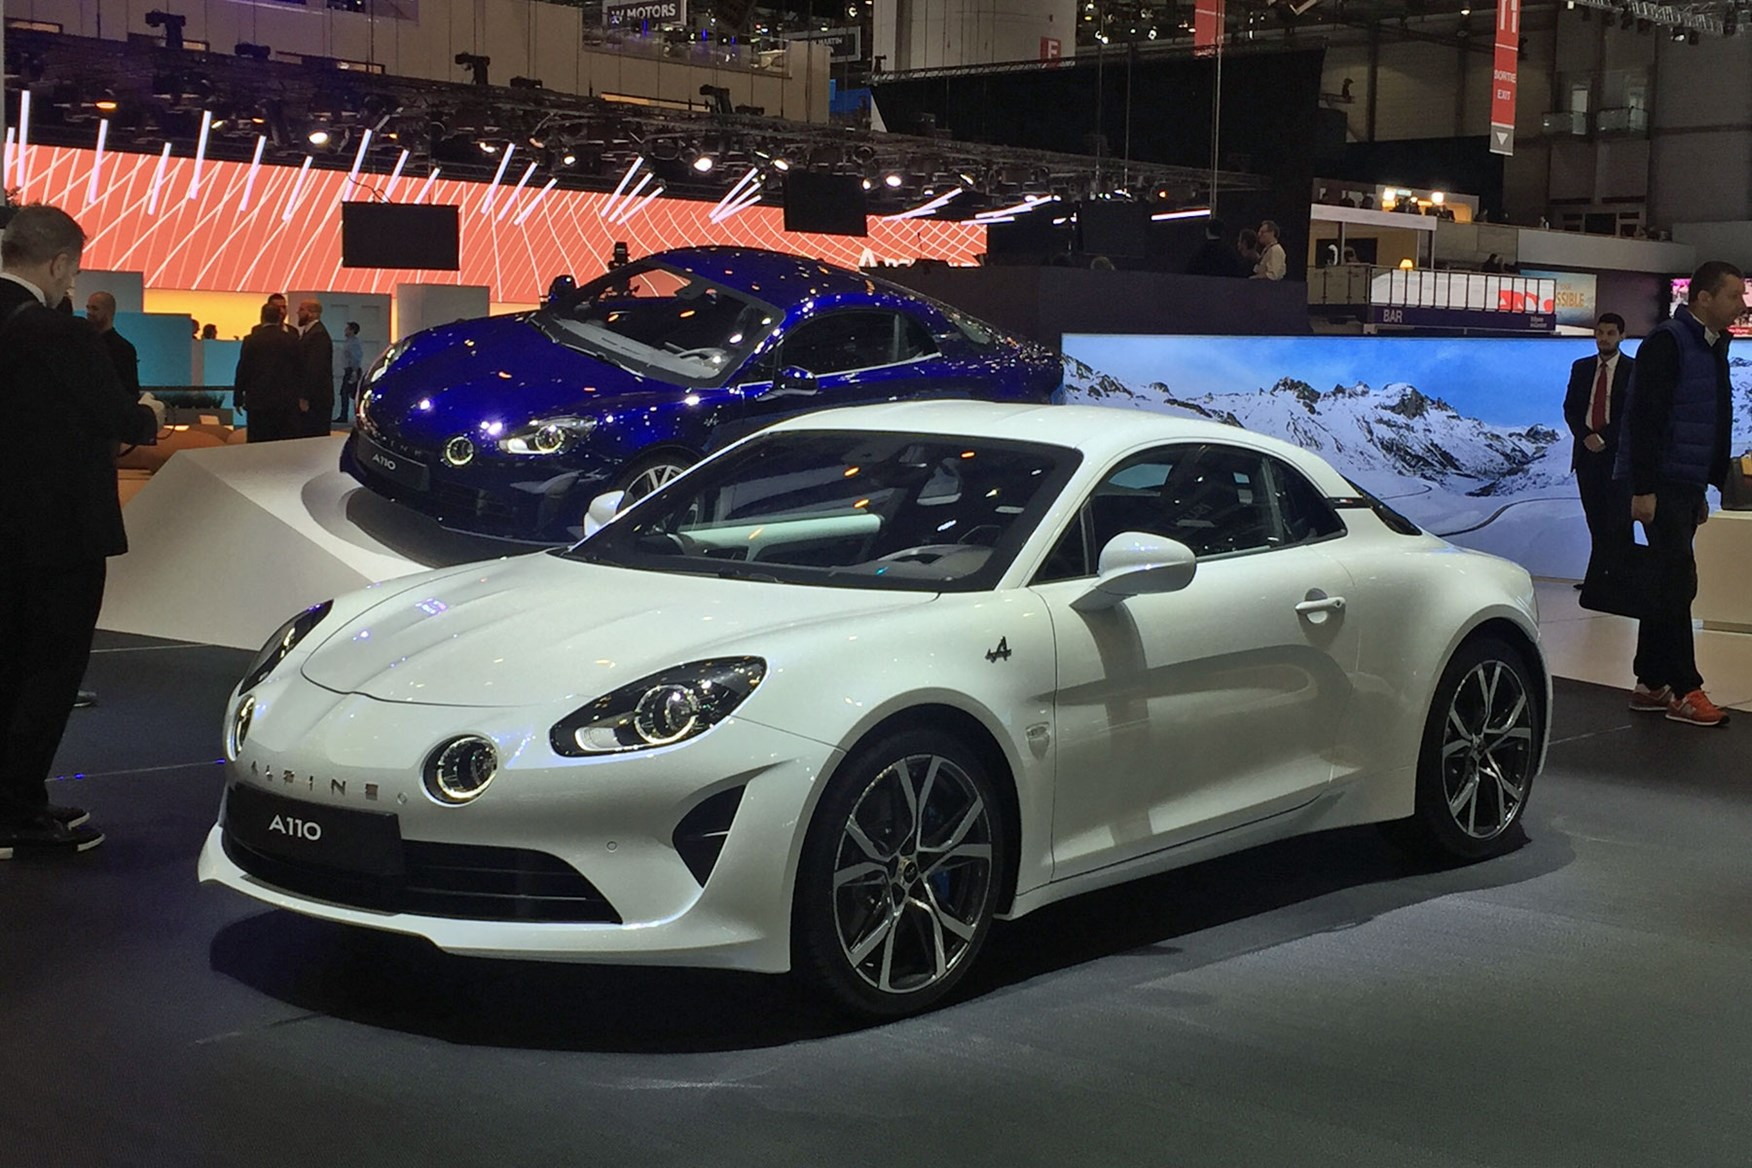 Alpine A110 sports car everything you need to know